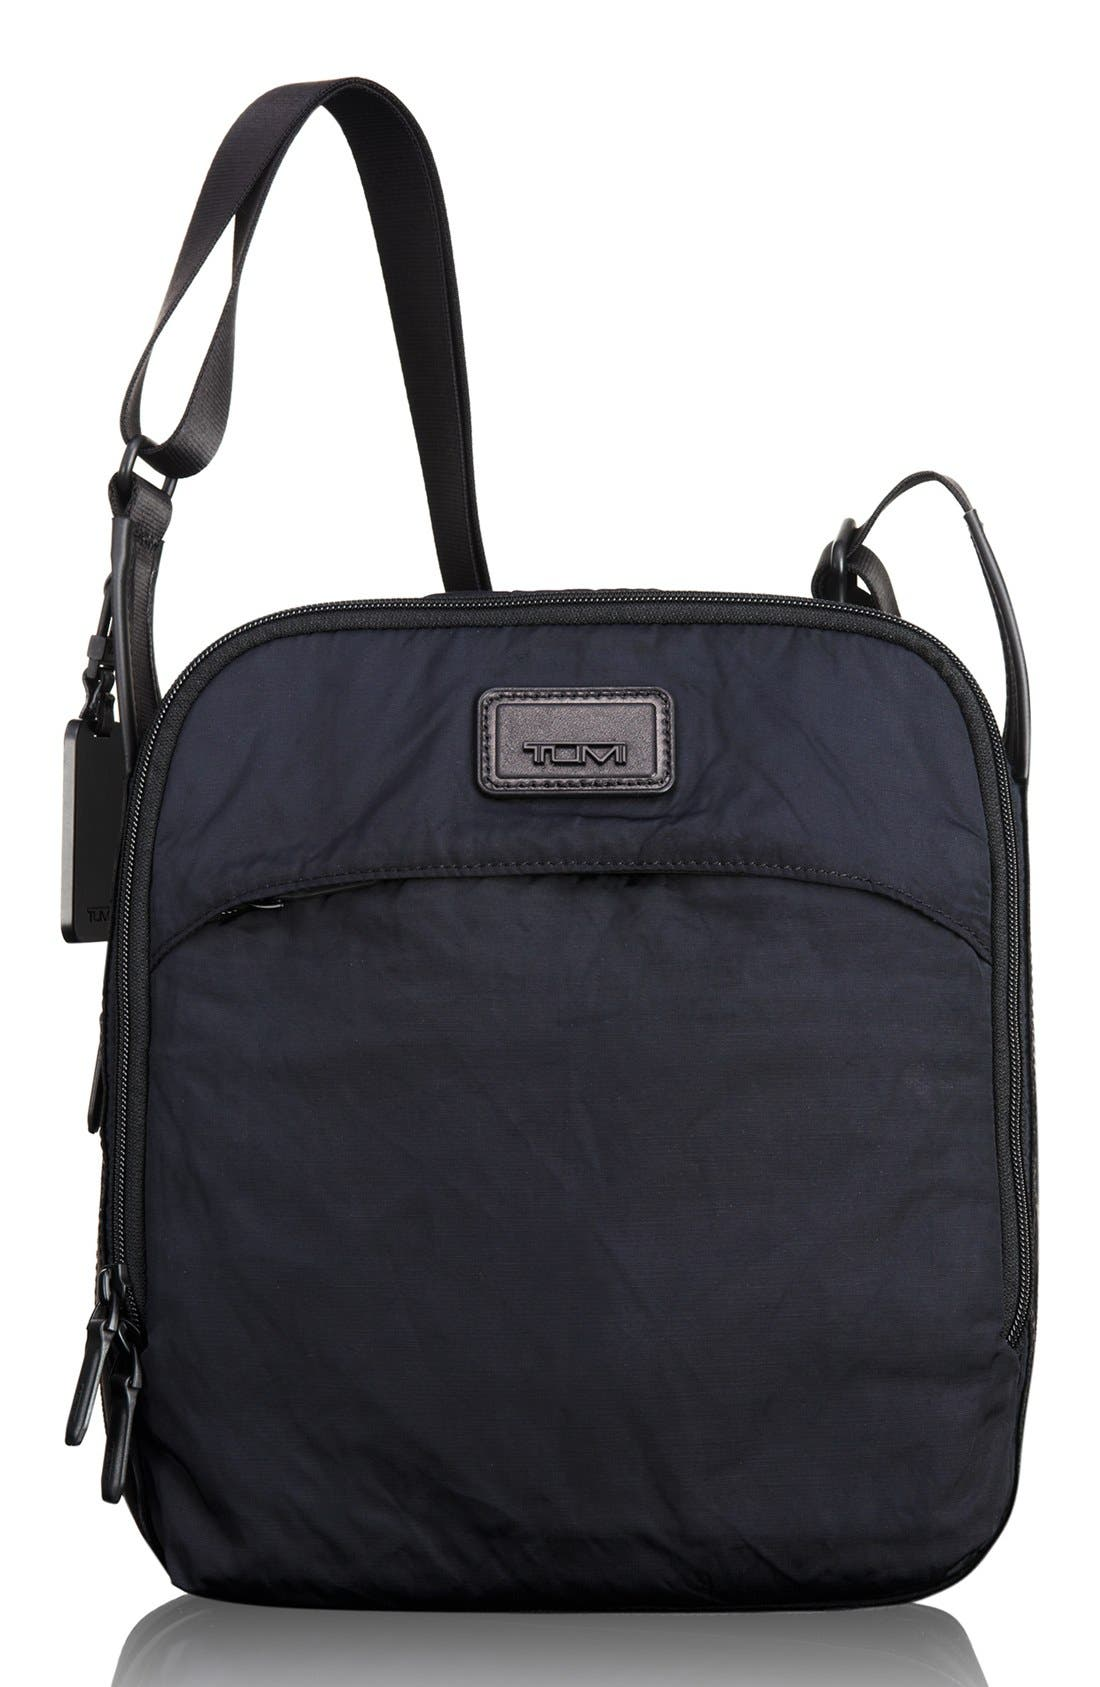 Main Image - Tumi 'Virtue - Fortitude' Flight Bag